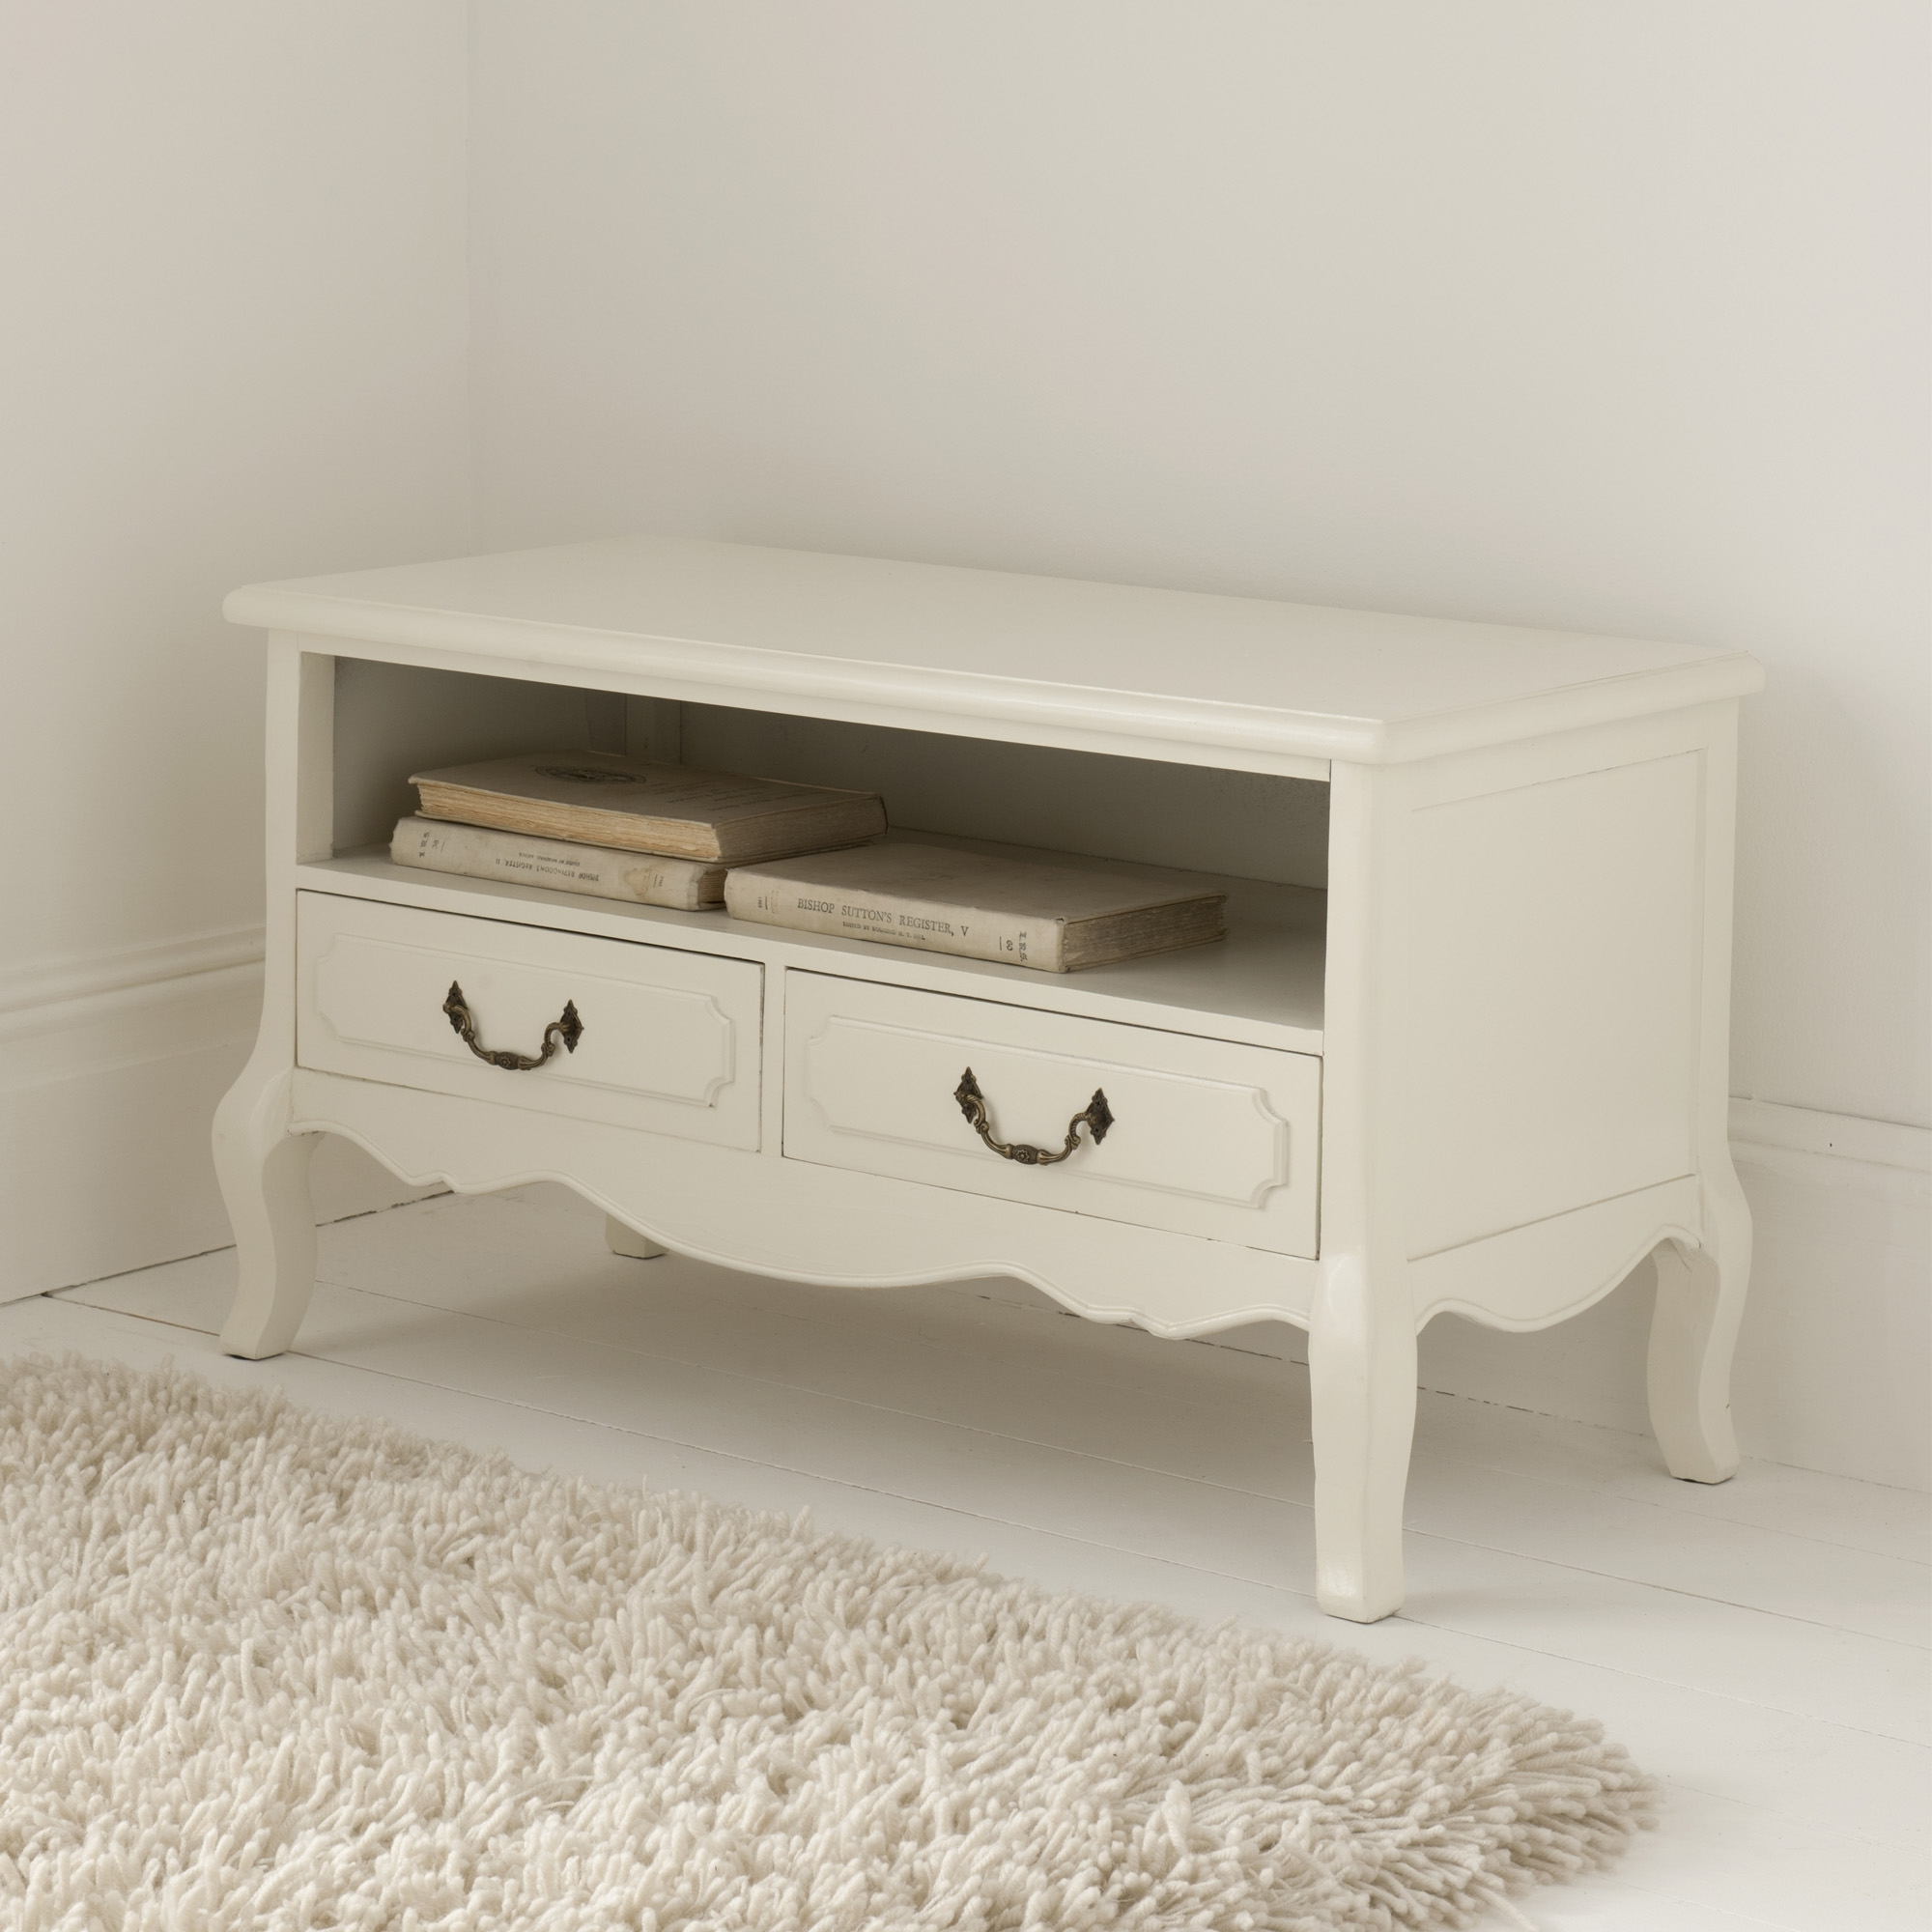 Antique White Furniture Range Within Most Recently Released Antique Style Tv Stands (View 6 of 20)